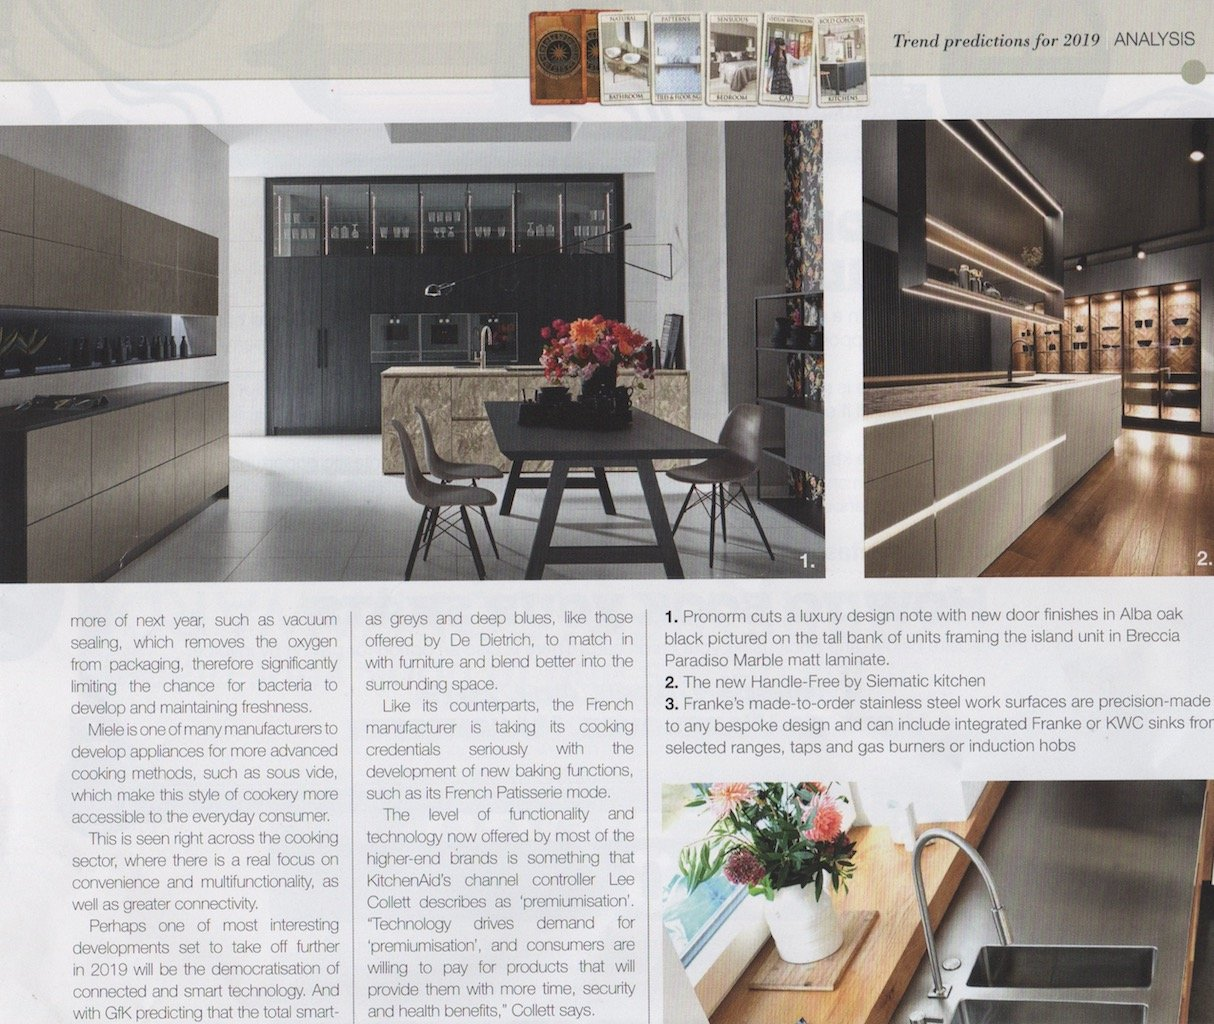 Part 4 of a kitchens trends article in kbbreview magazine